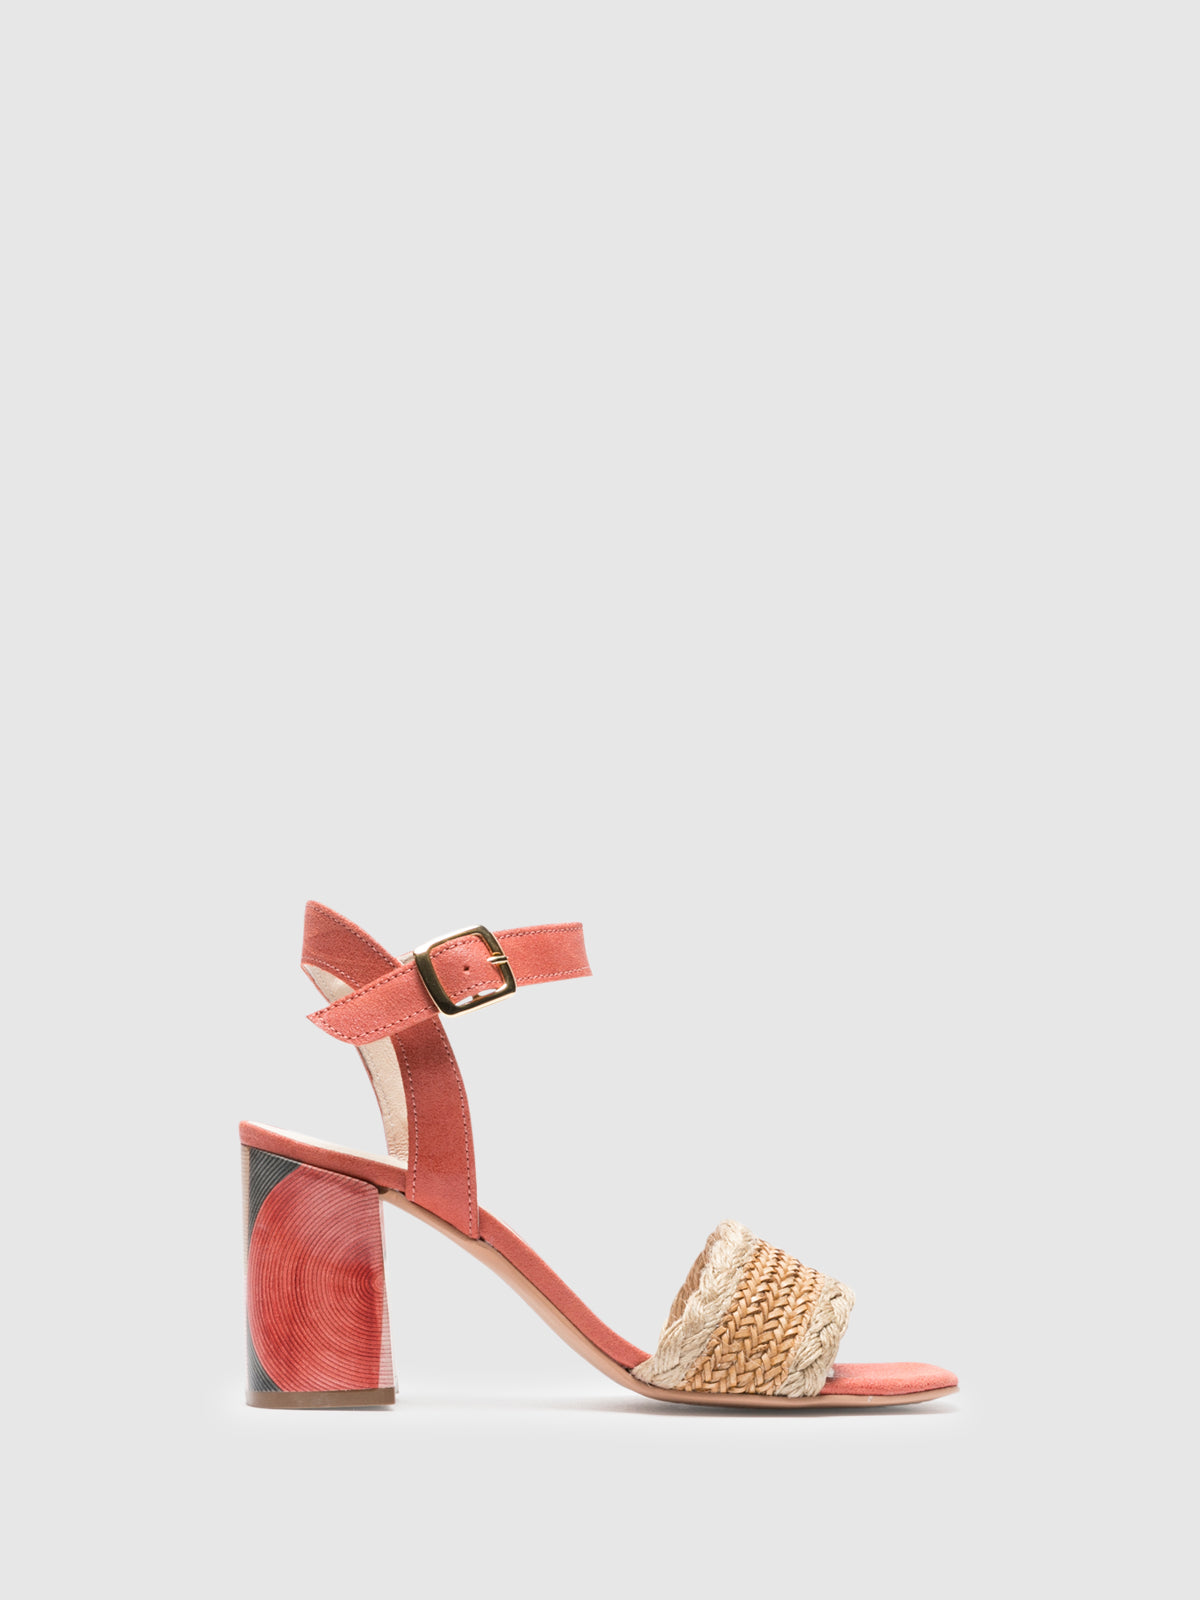 Foreva Pink Ankle Strap Sandals